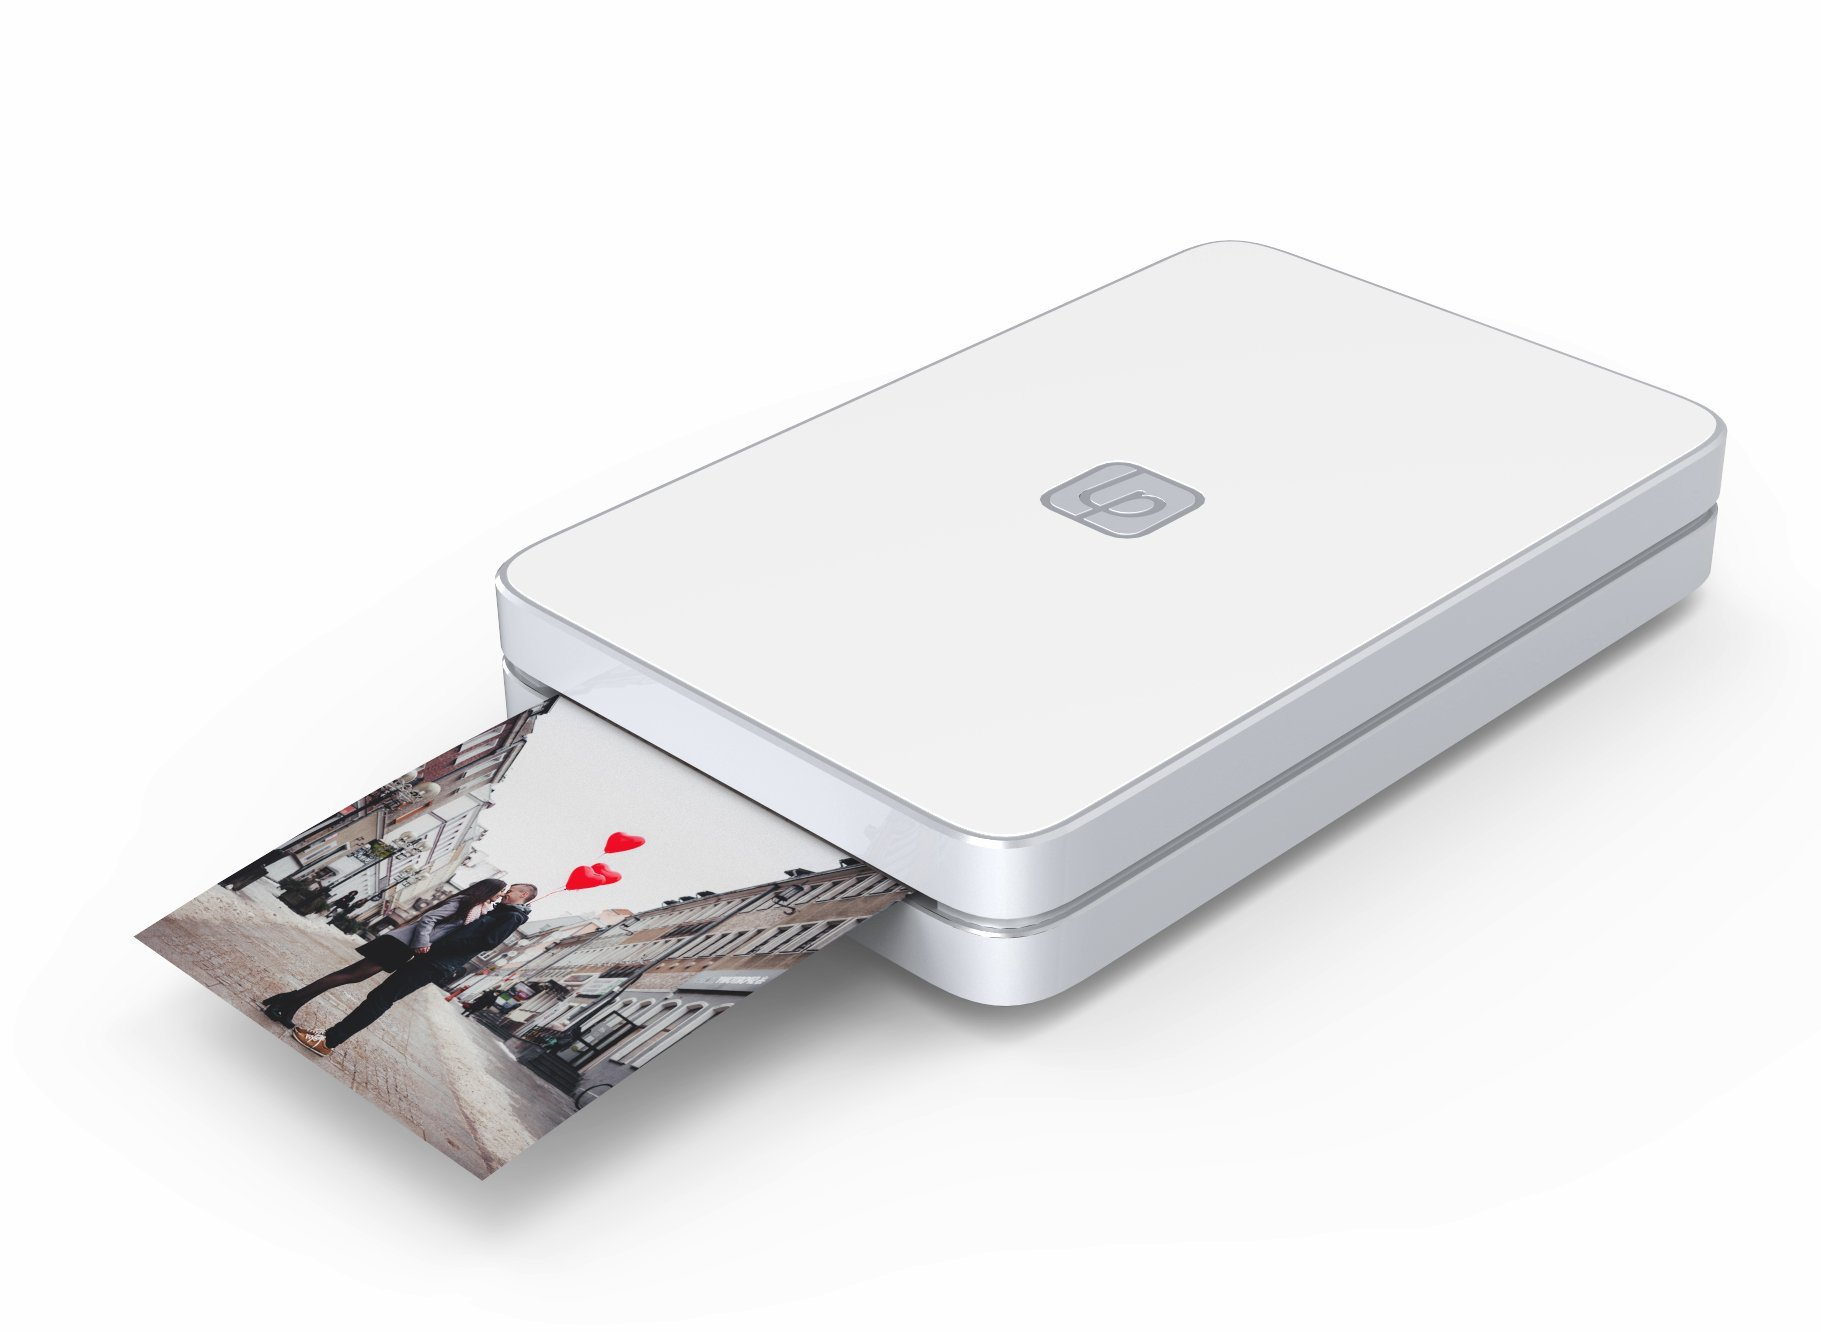 Lifeprint 2x3 Portable Photo AND Video Printer for iPhone and Android. Make Your Photos Come To Life w/ Augmented Reality - White by Lifeprint